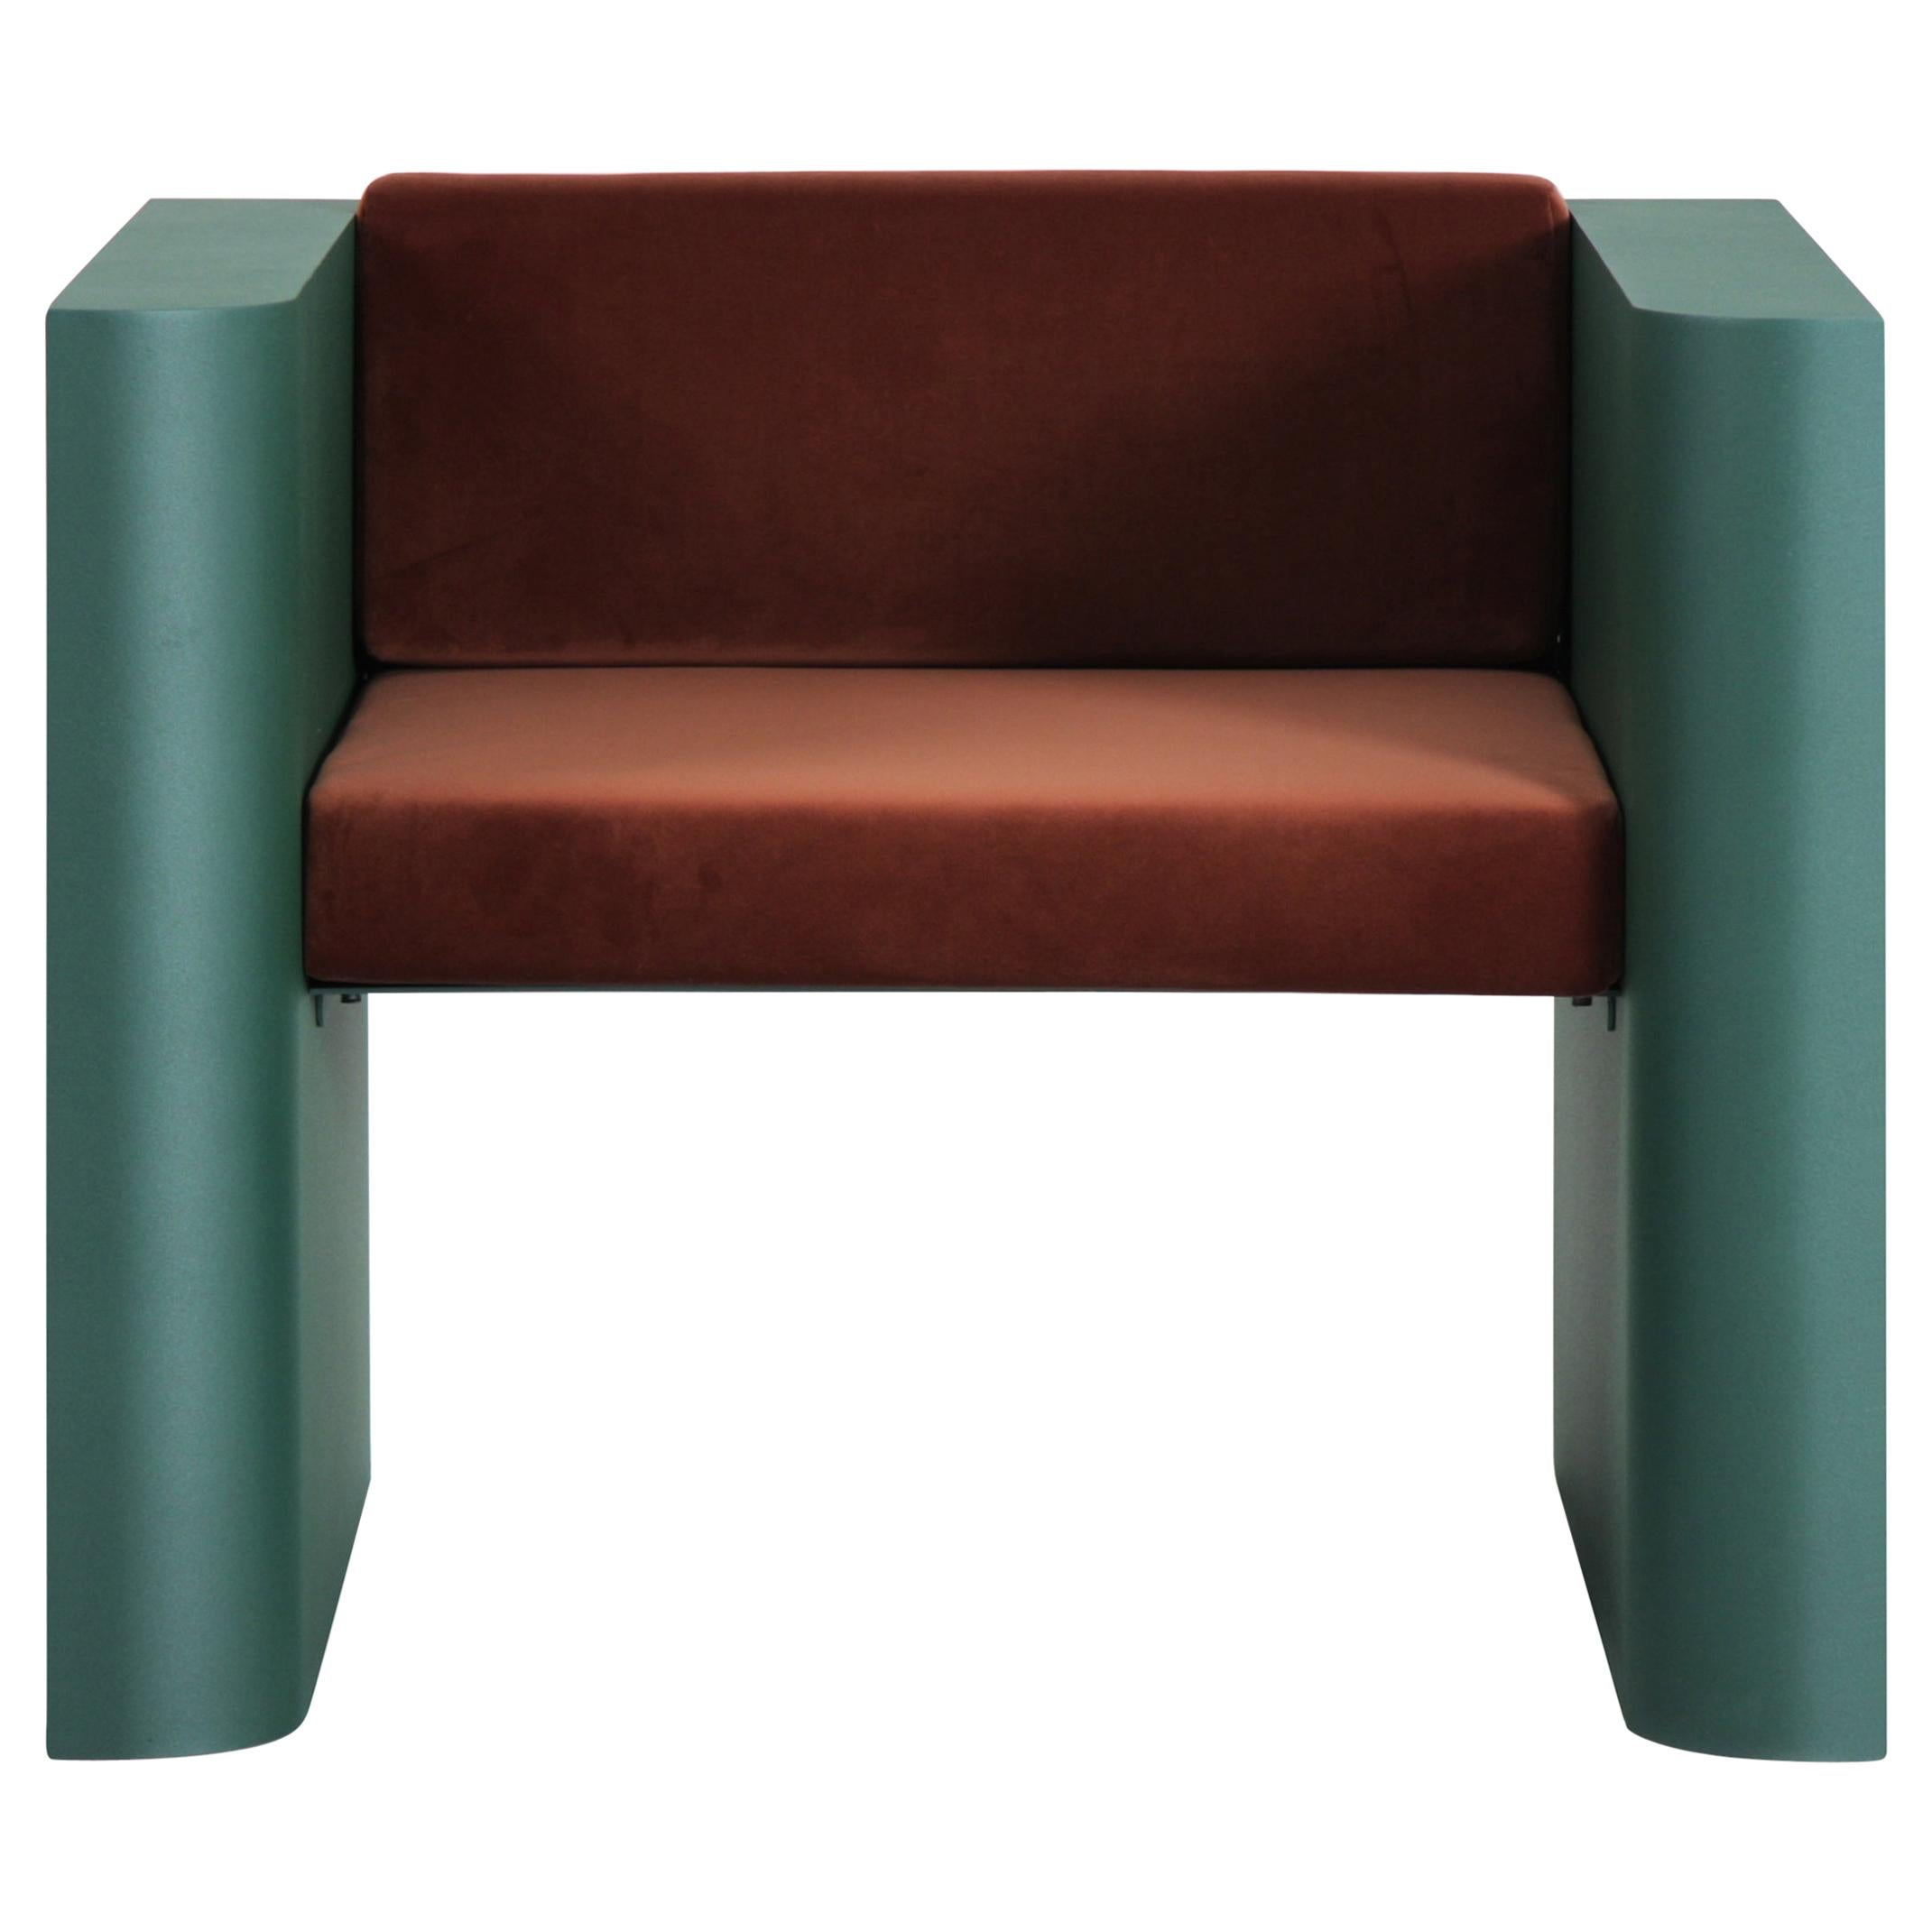 Contemporary Minimalistic Armchair in Steel Powder-Coated and Velvet